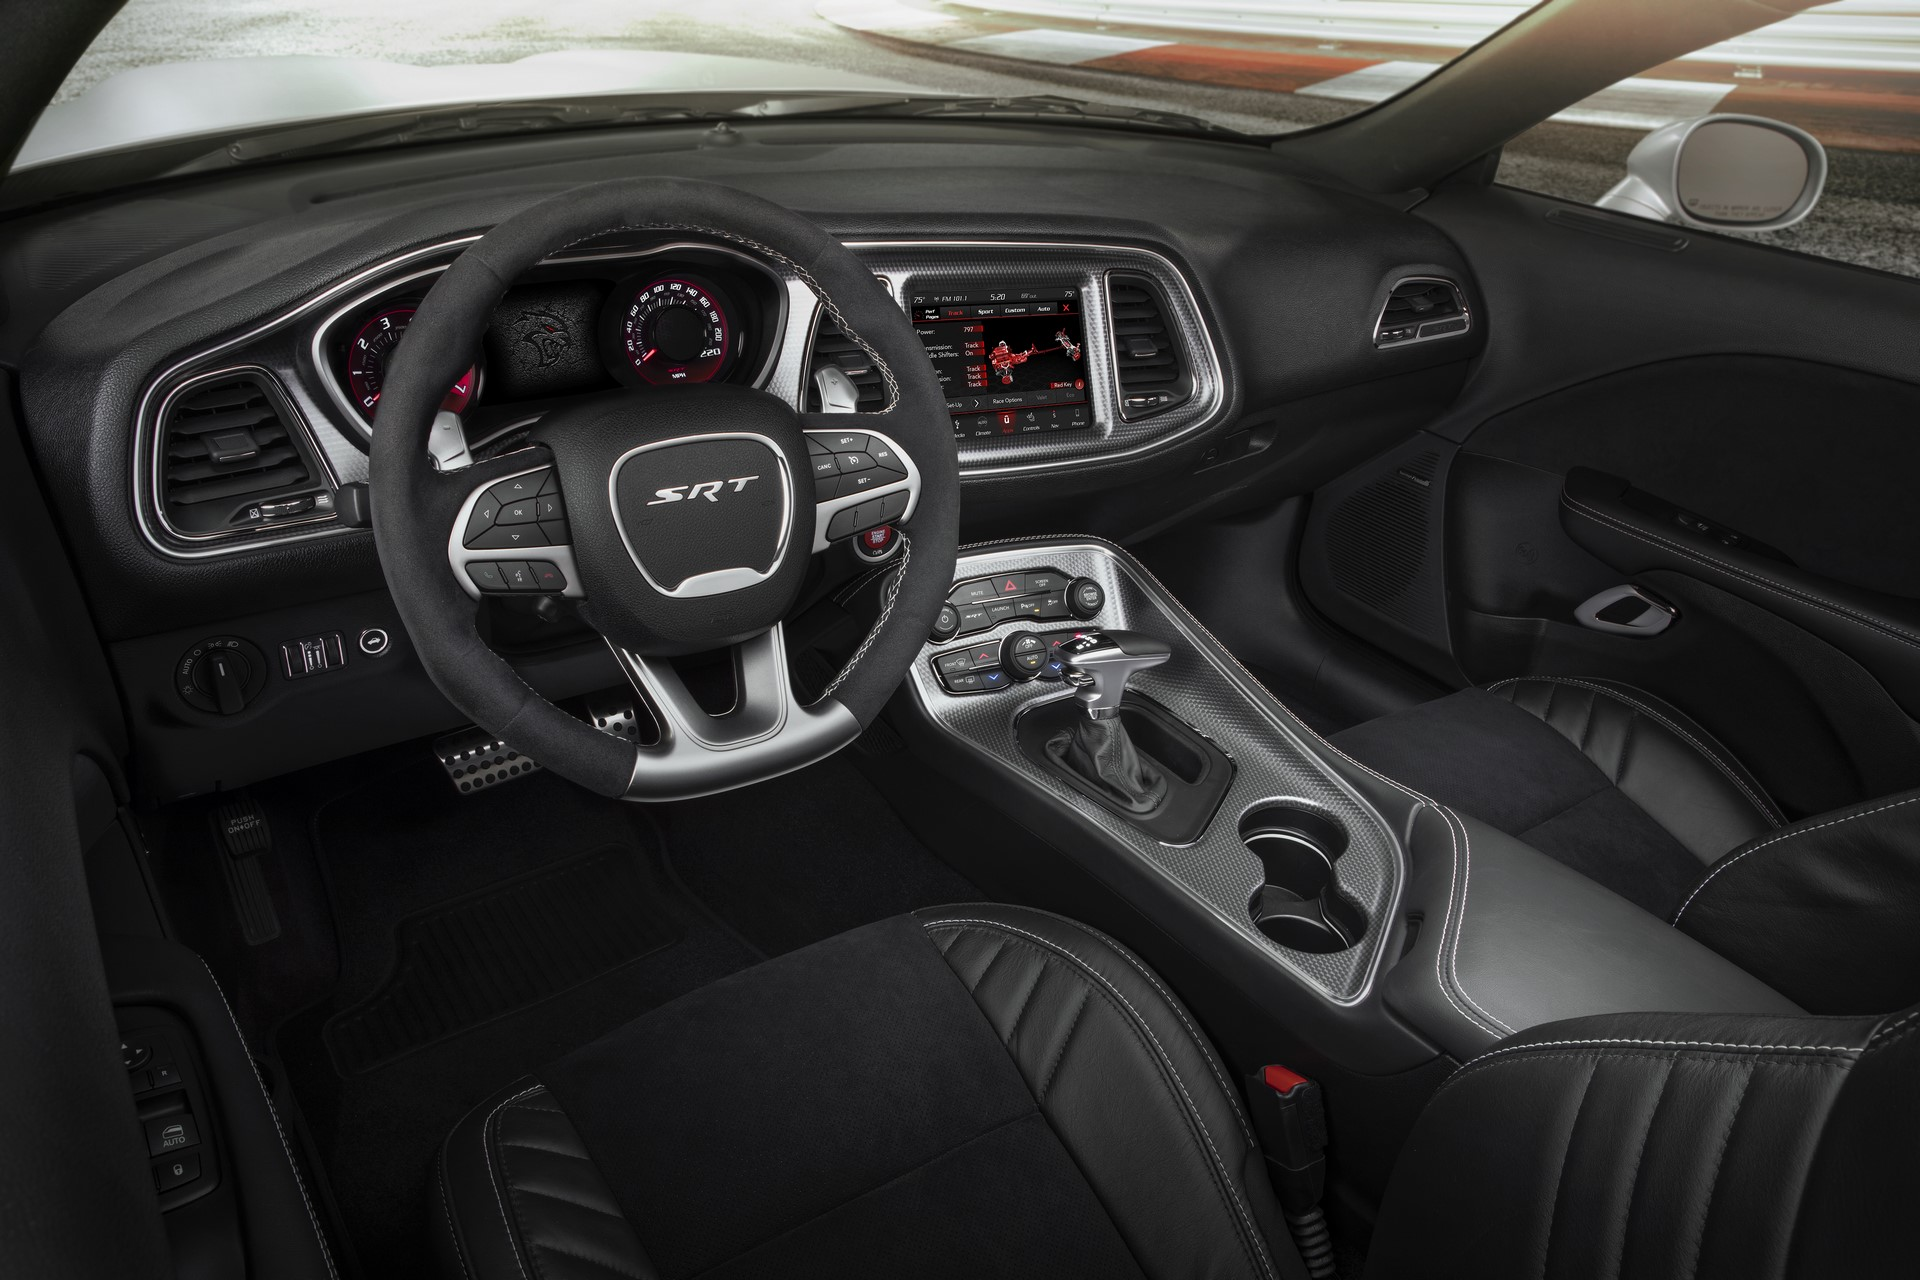 2019 Dodge Challenger SRT Hellcat Redeye Widebody - interior